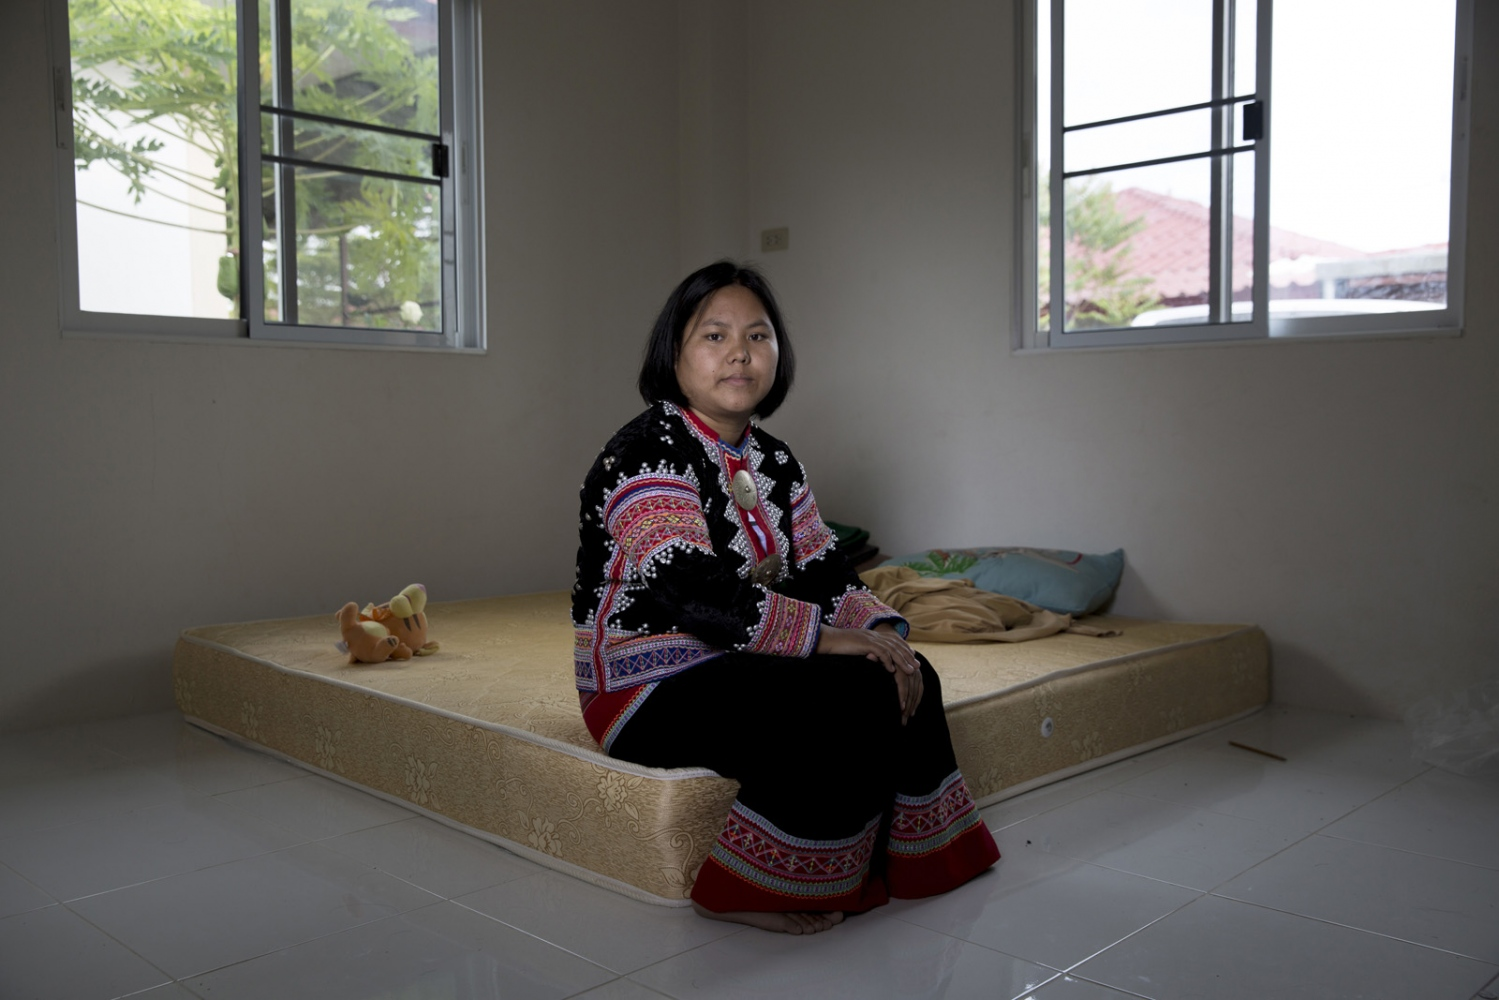 Yuphin Saja, a member of the Lahu minority group in the safe house she has been forced to move to with her husband and small children for their own protection after a member of the group was allegedly shot dead at a checkpoint. Northern Thailand